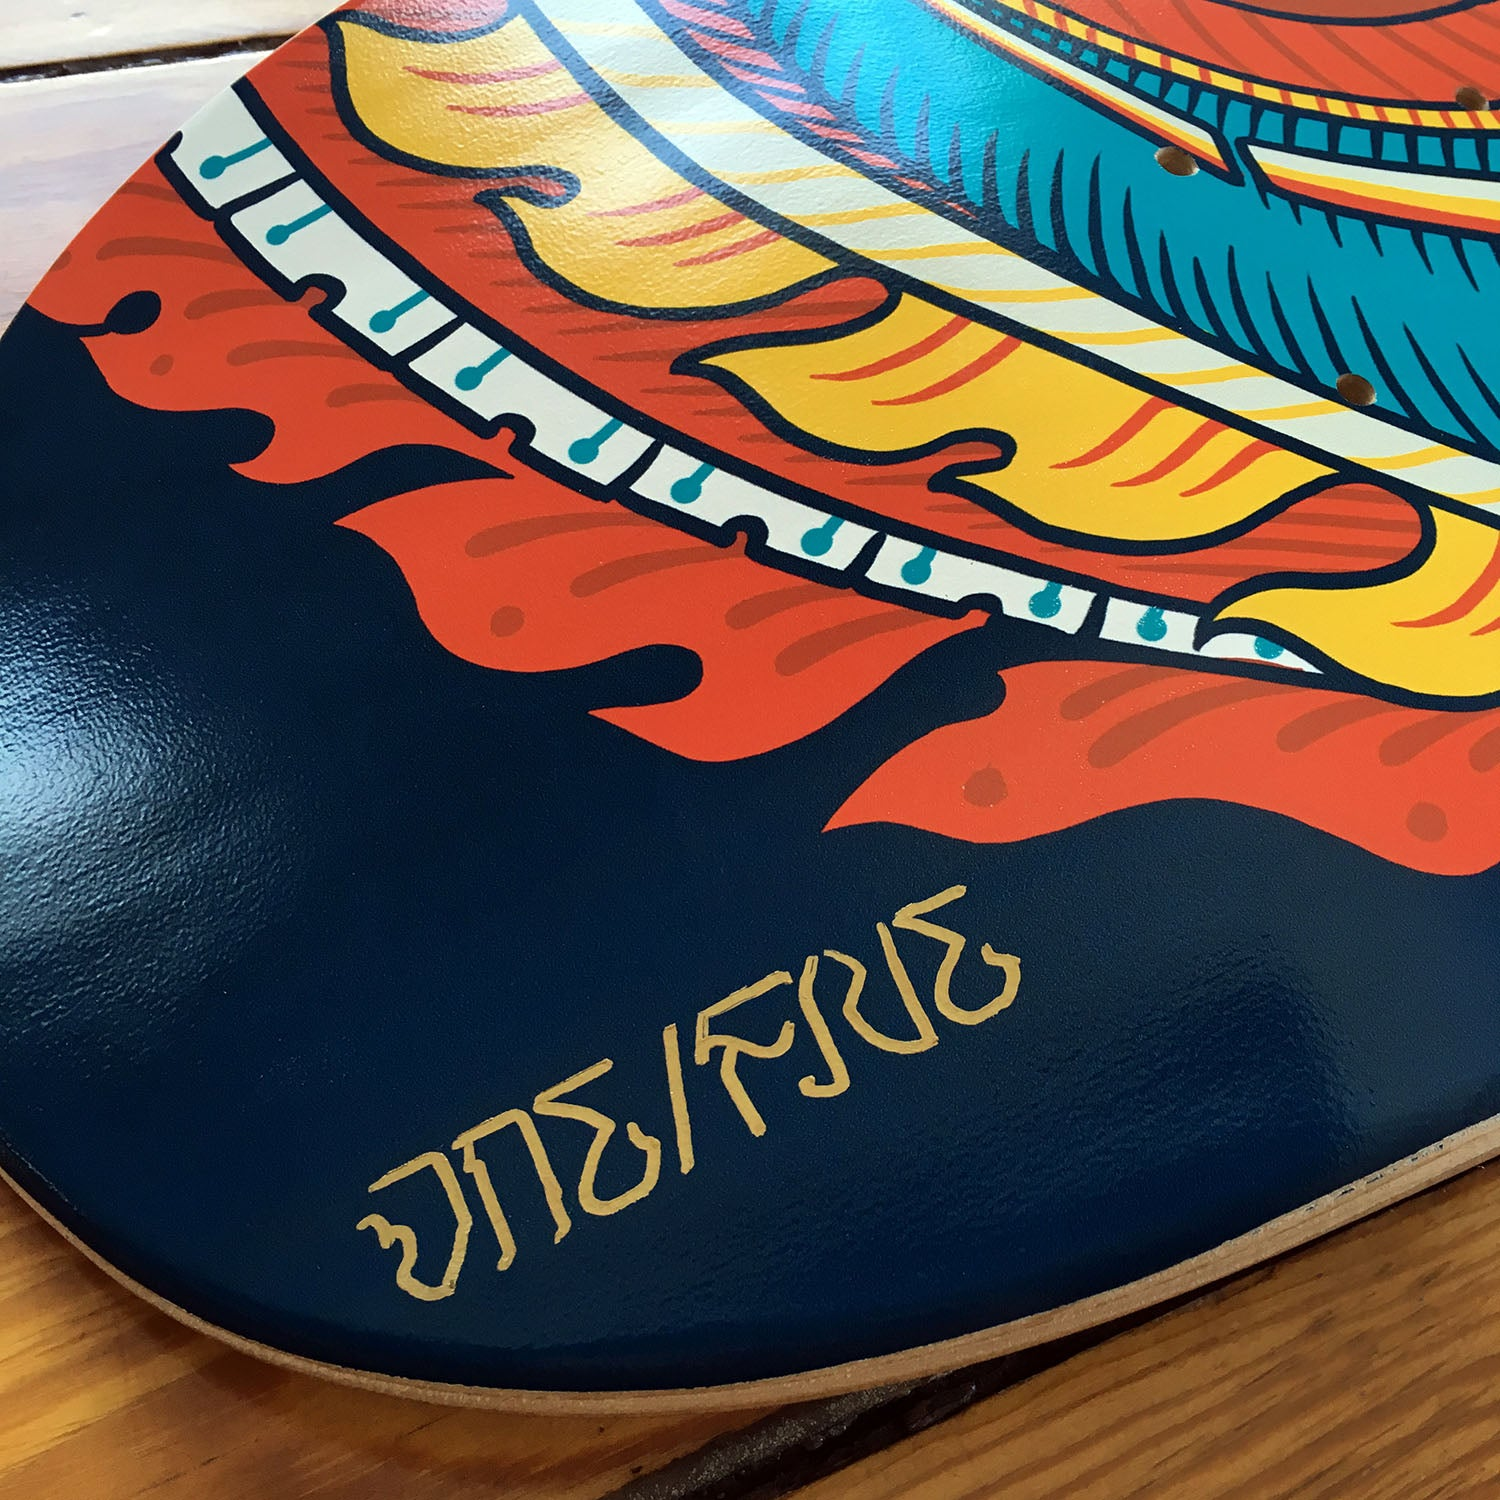 'Compassionate Protectors' 10-Skate Deck Totem: Edition of 5